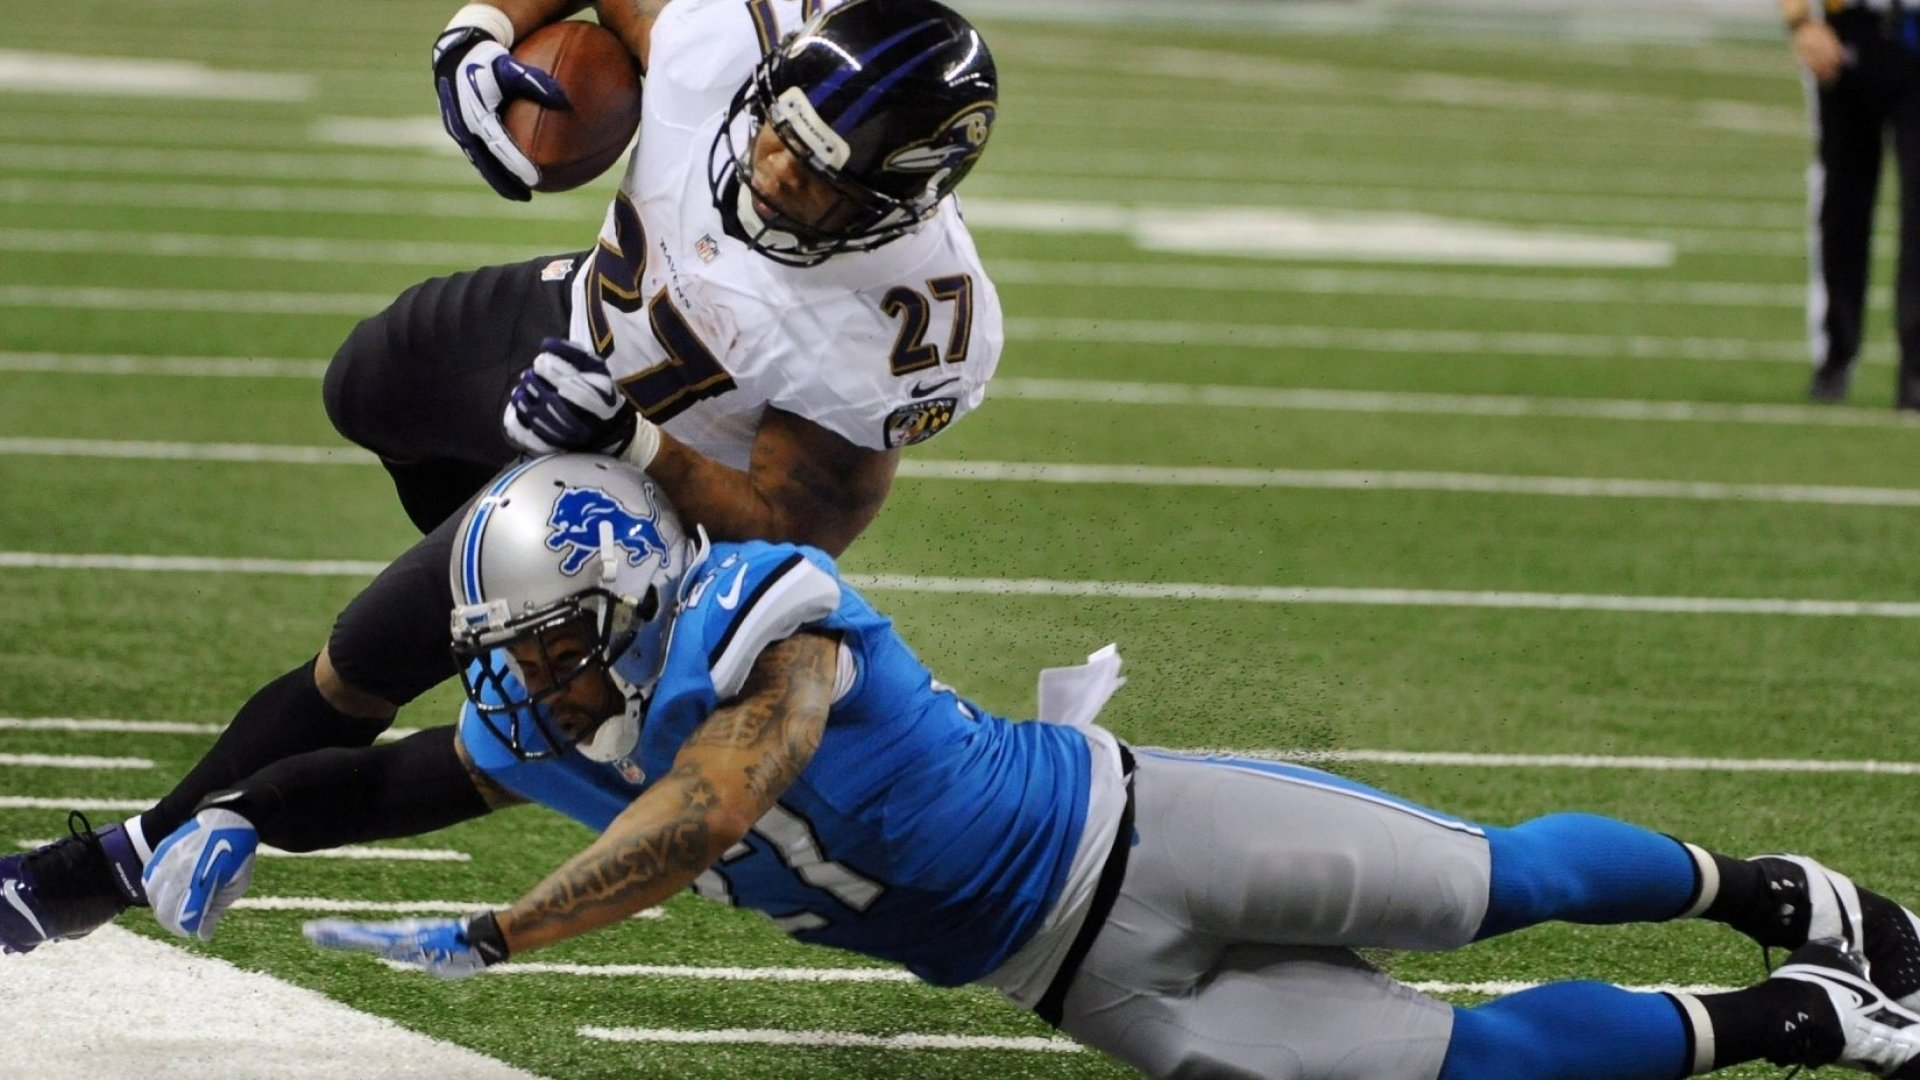 Glover Quin makes a tackle against the Baltimore Ravens.